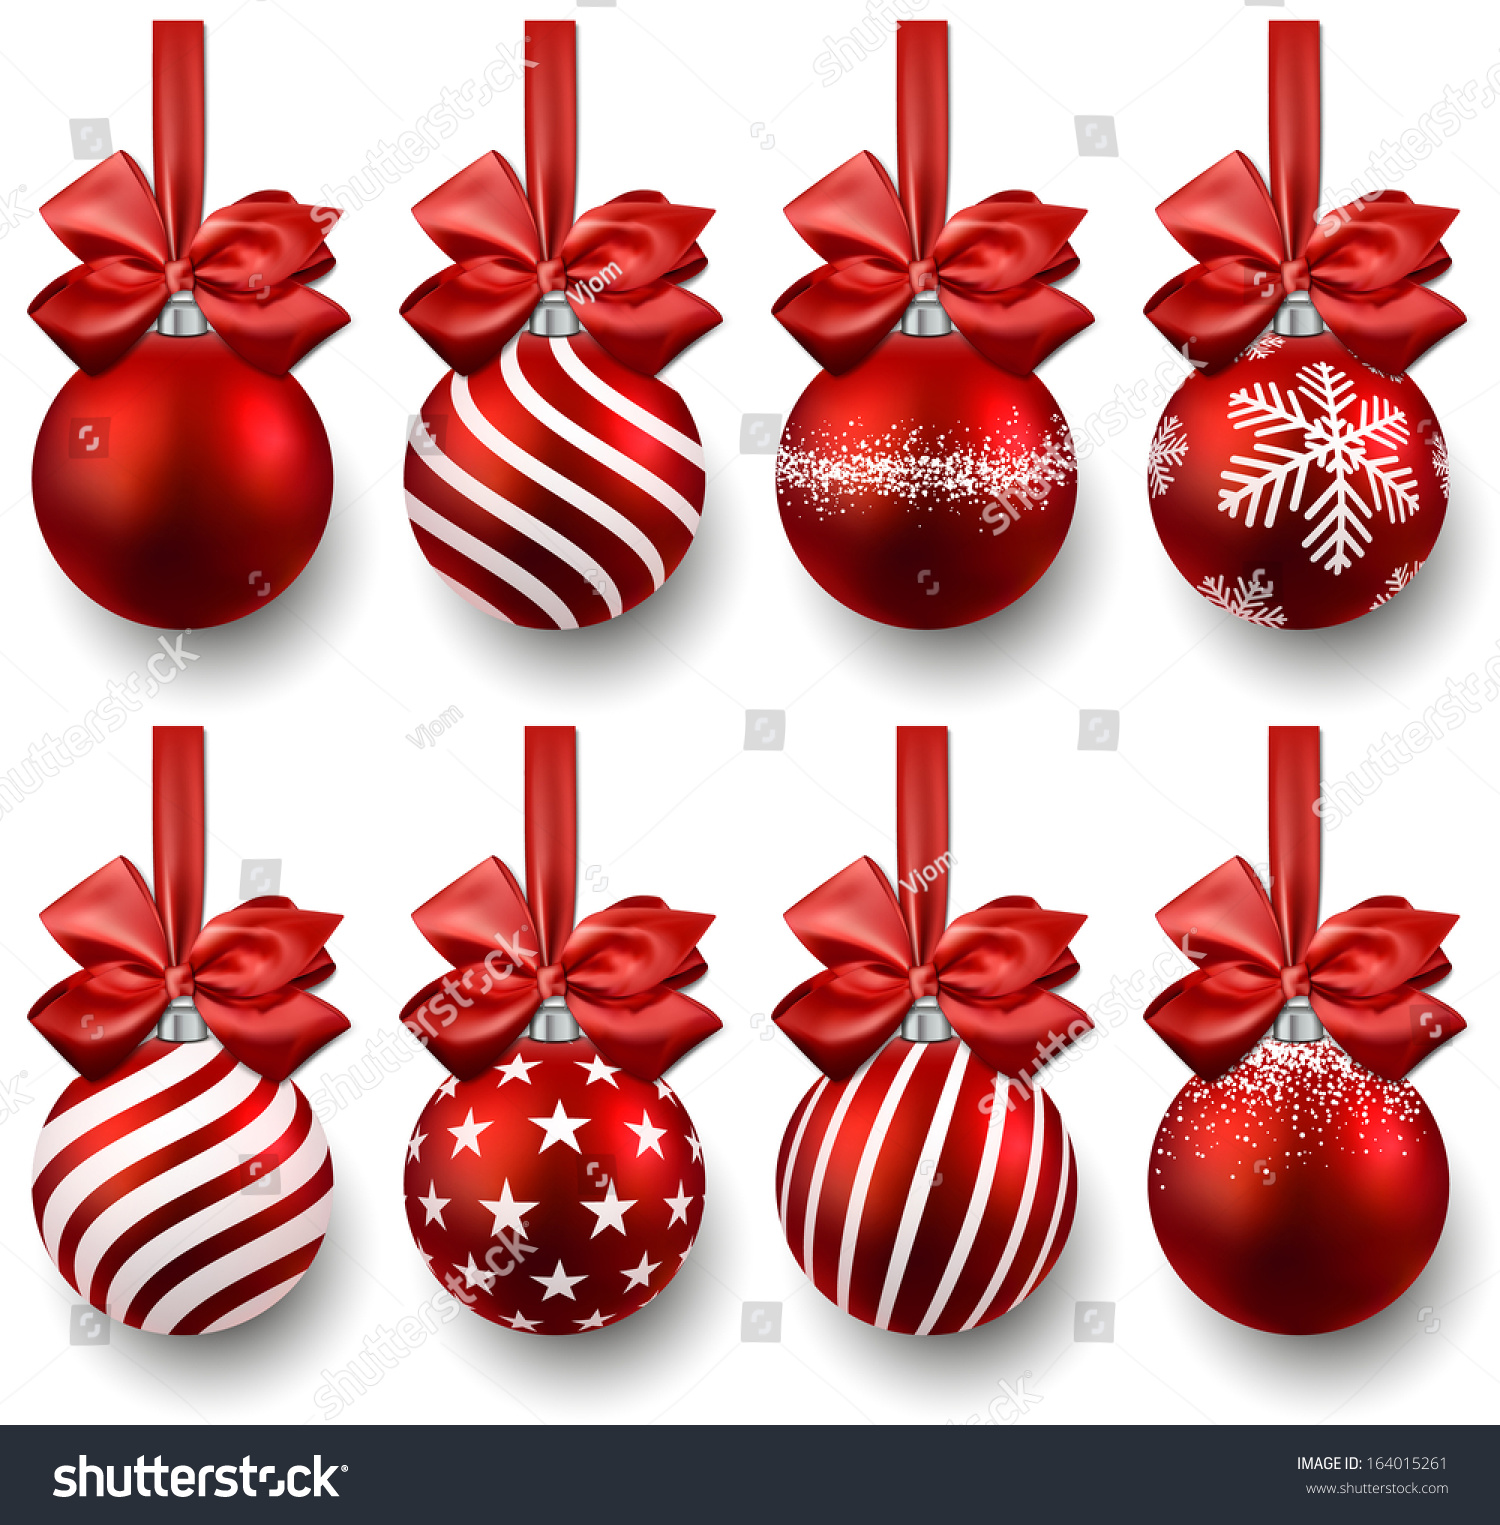 red christmas balls on gift bows set of isolated realistic decorations vector illustration